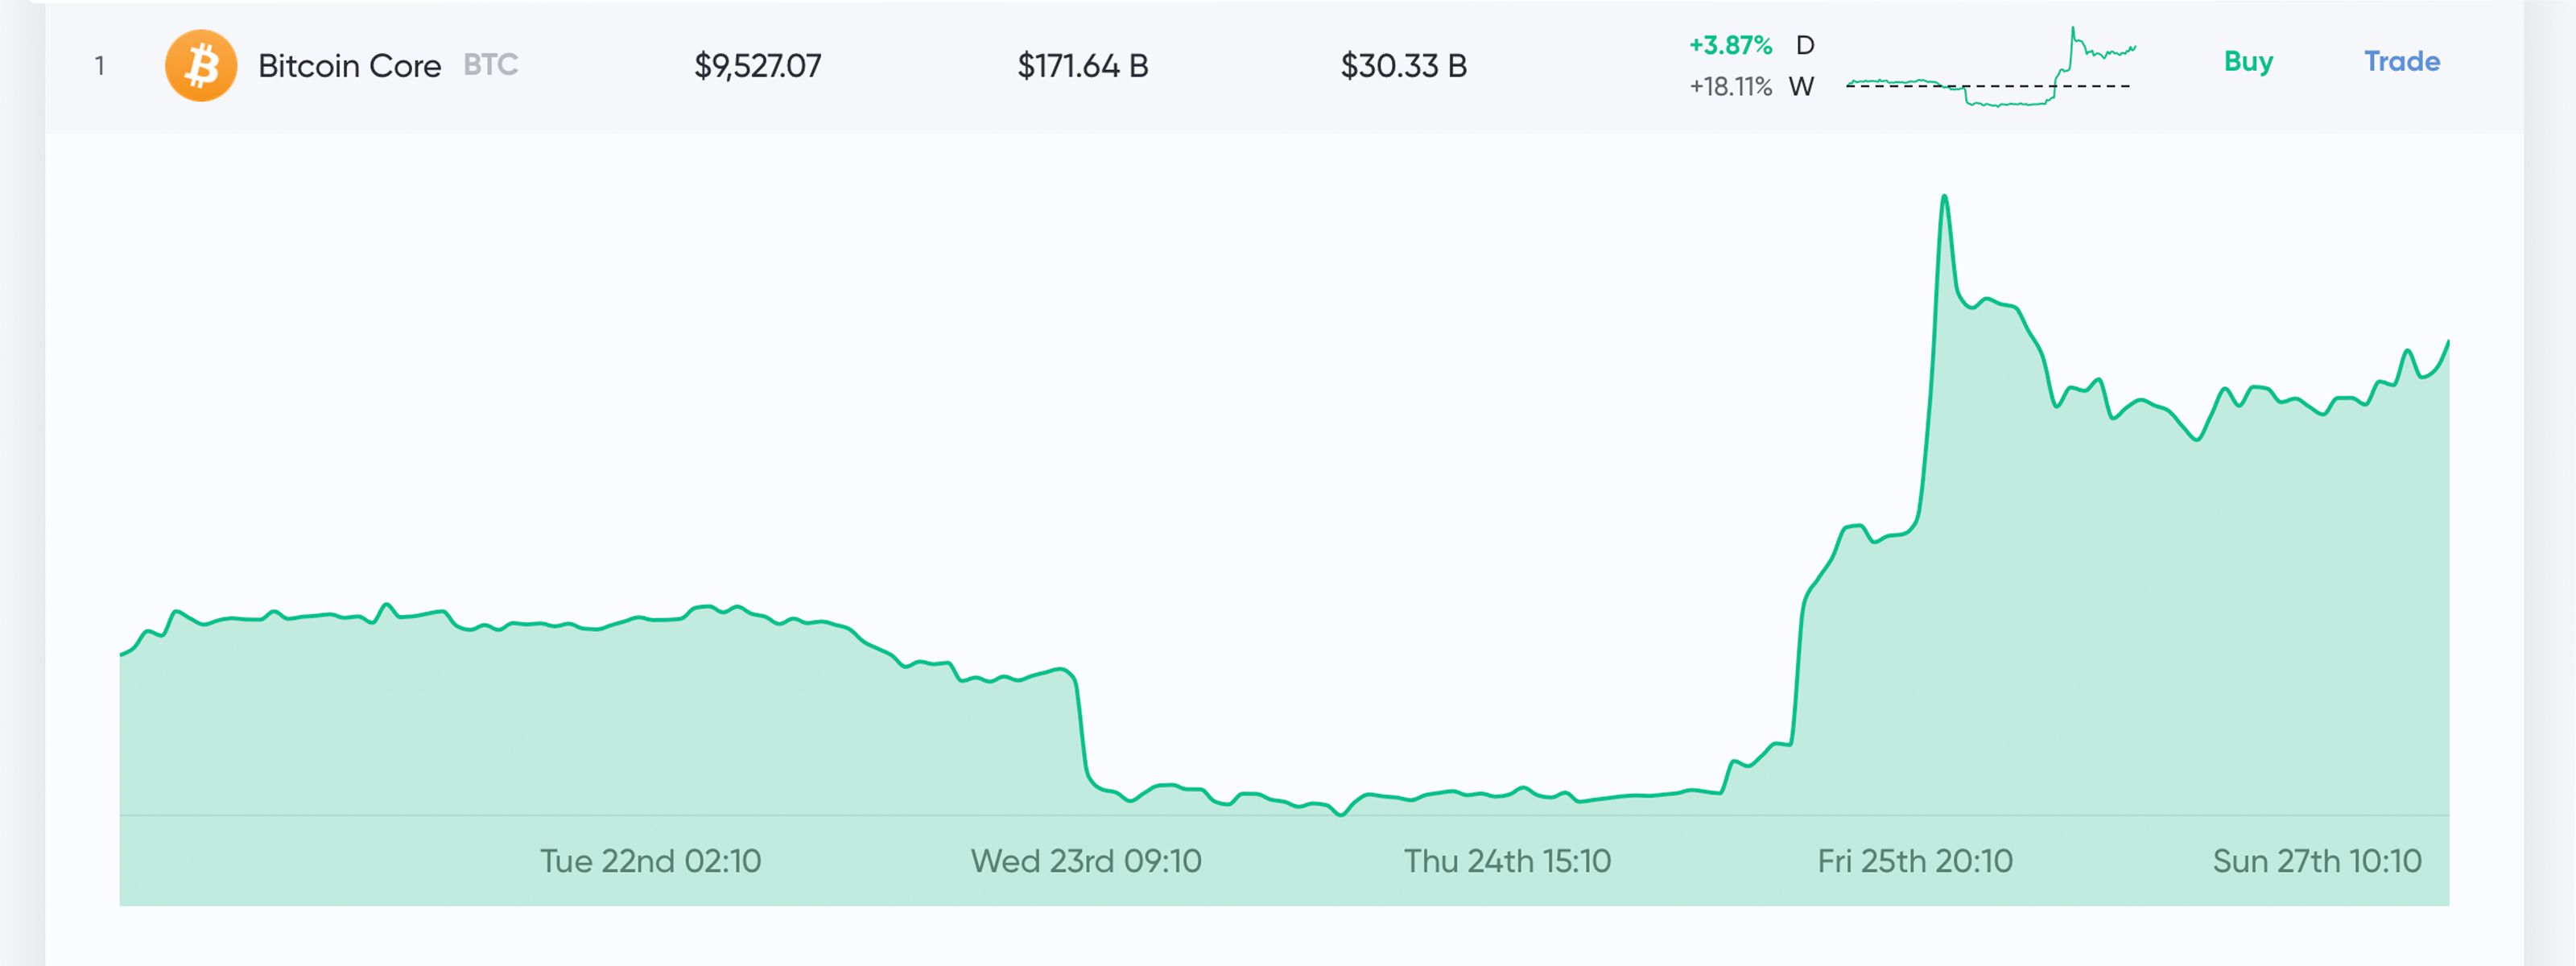 Market Update: Crypto Prices Hold Steady After Massive Bullish Spike